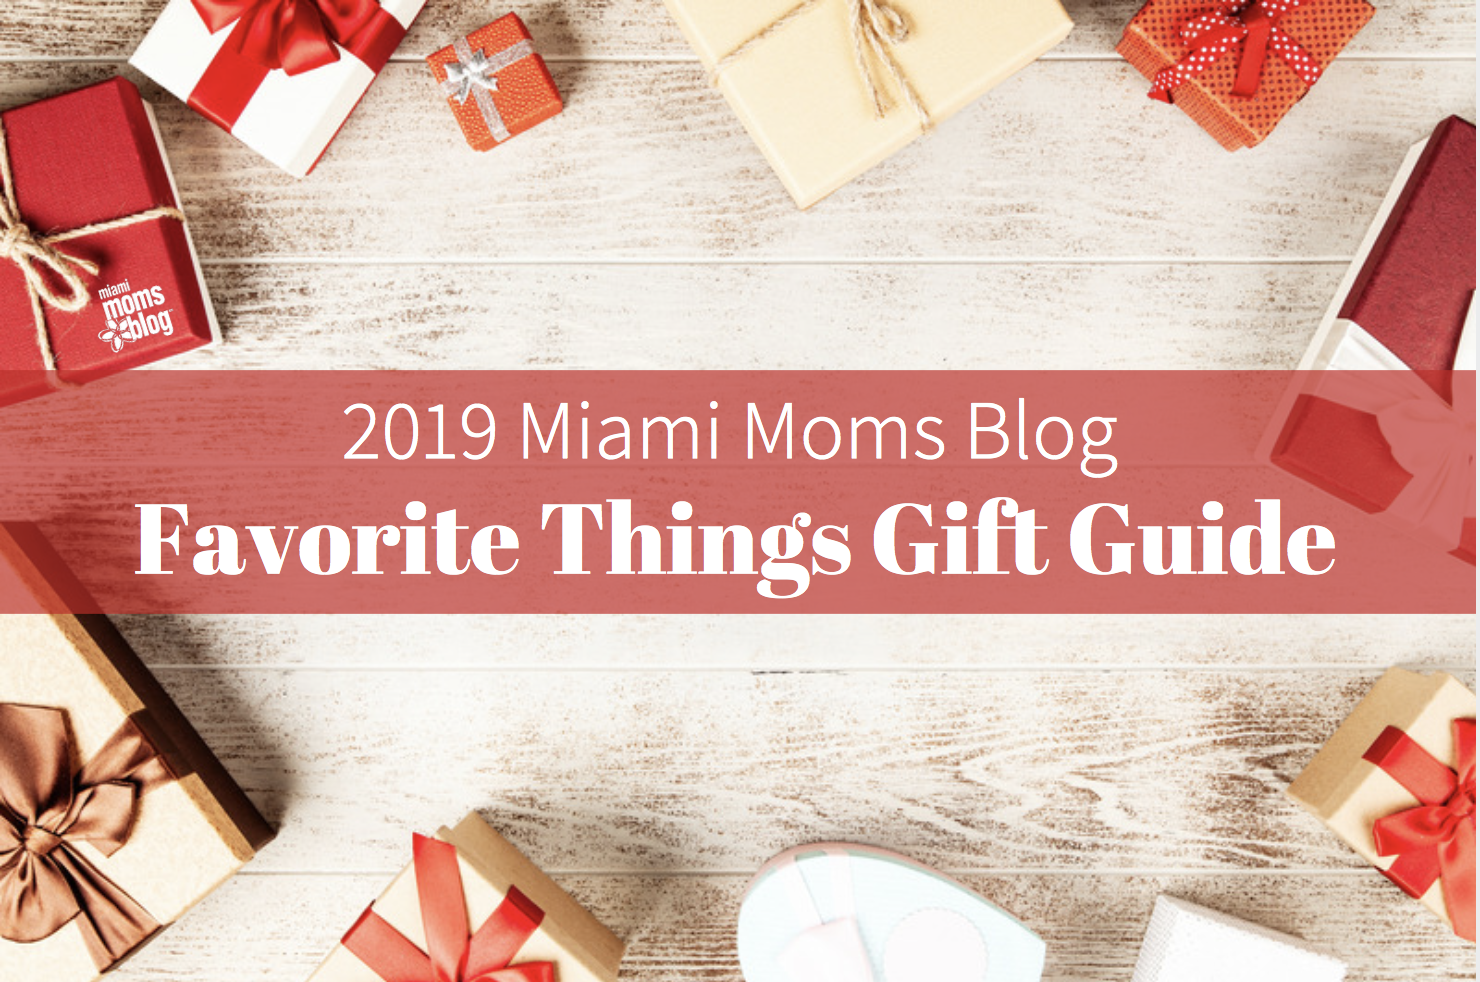 miami moms blog favorite things gift guide